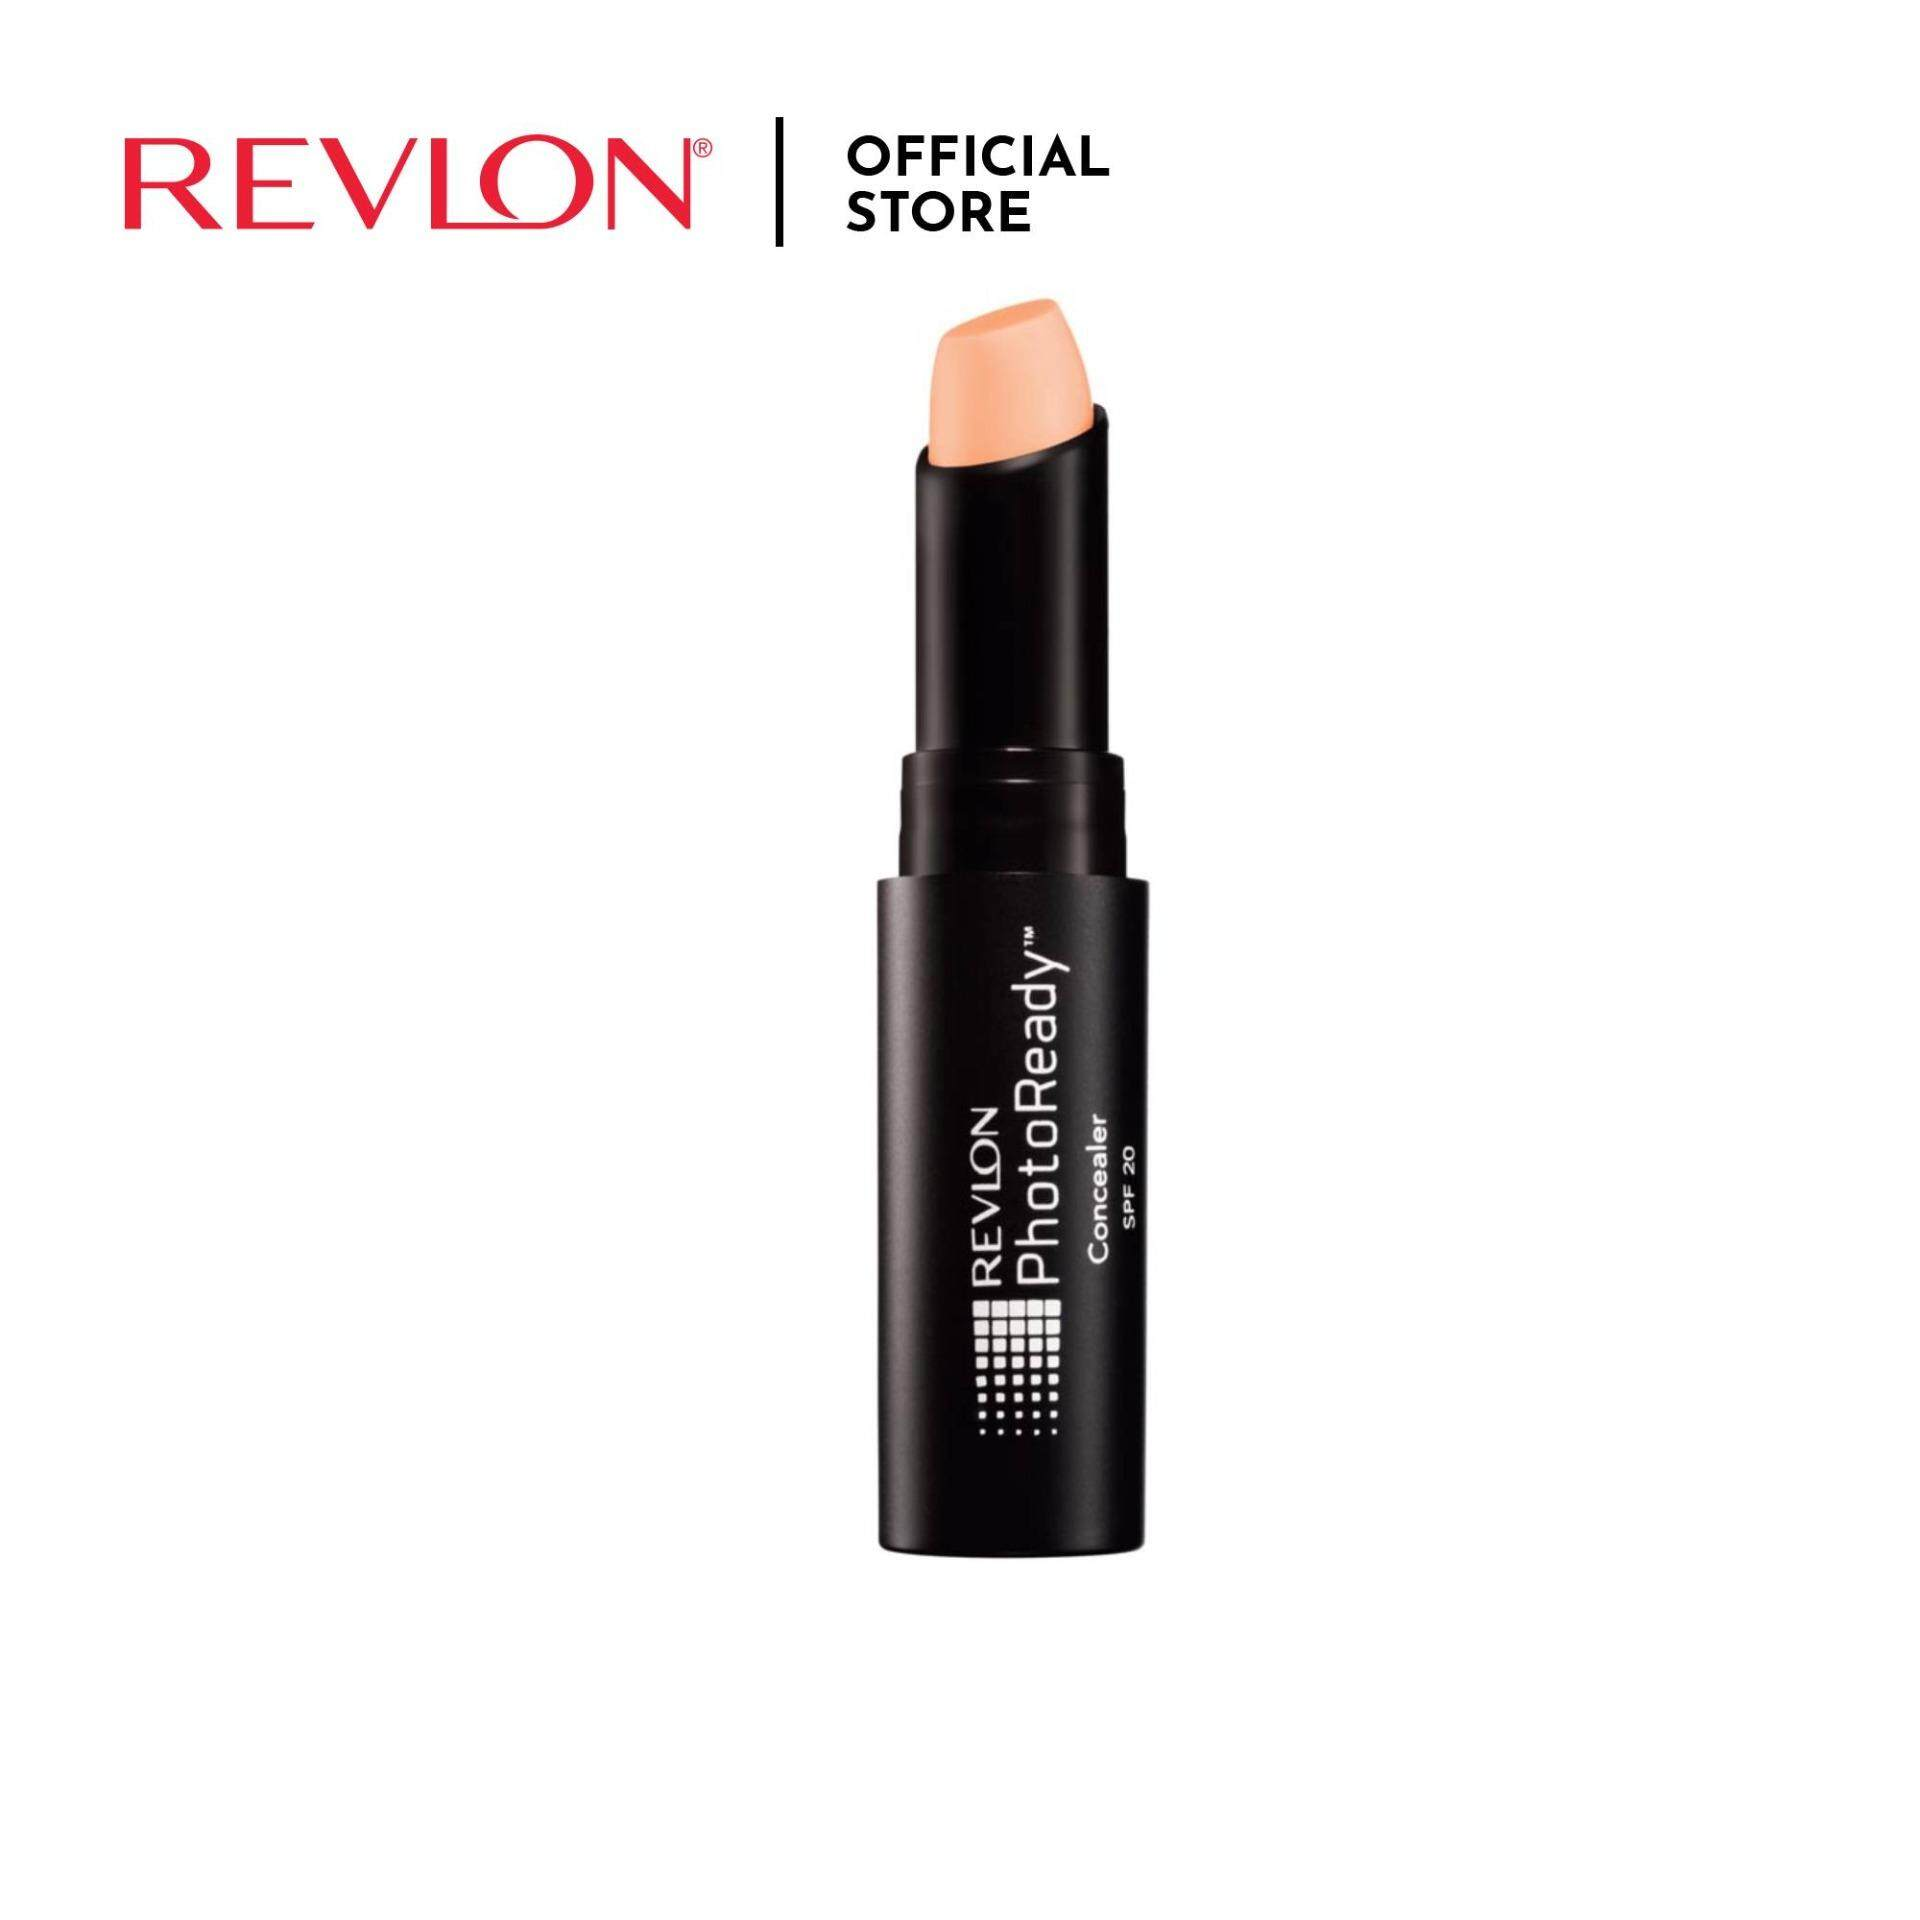 Revlon Photoready Concealer -Medium Deep 005